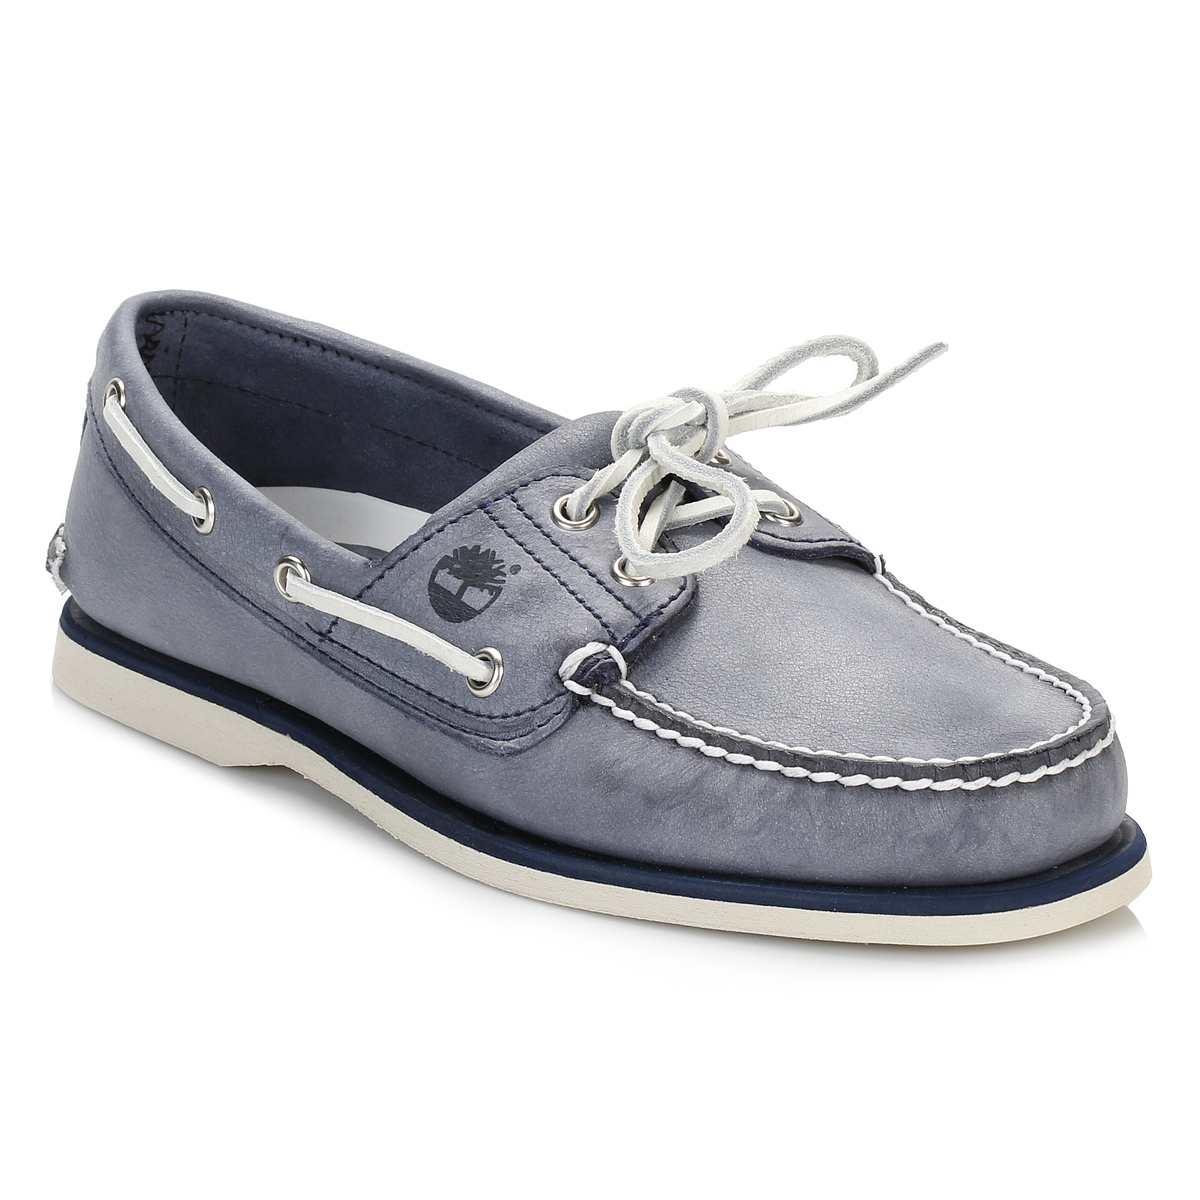 Men's Blue Lace Up Classic Boat Shoes